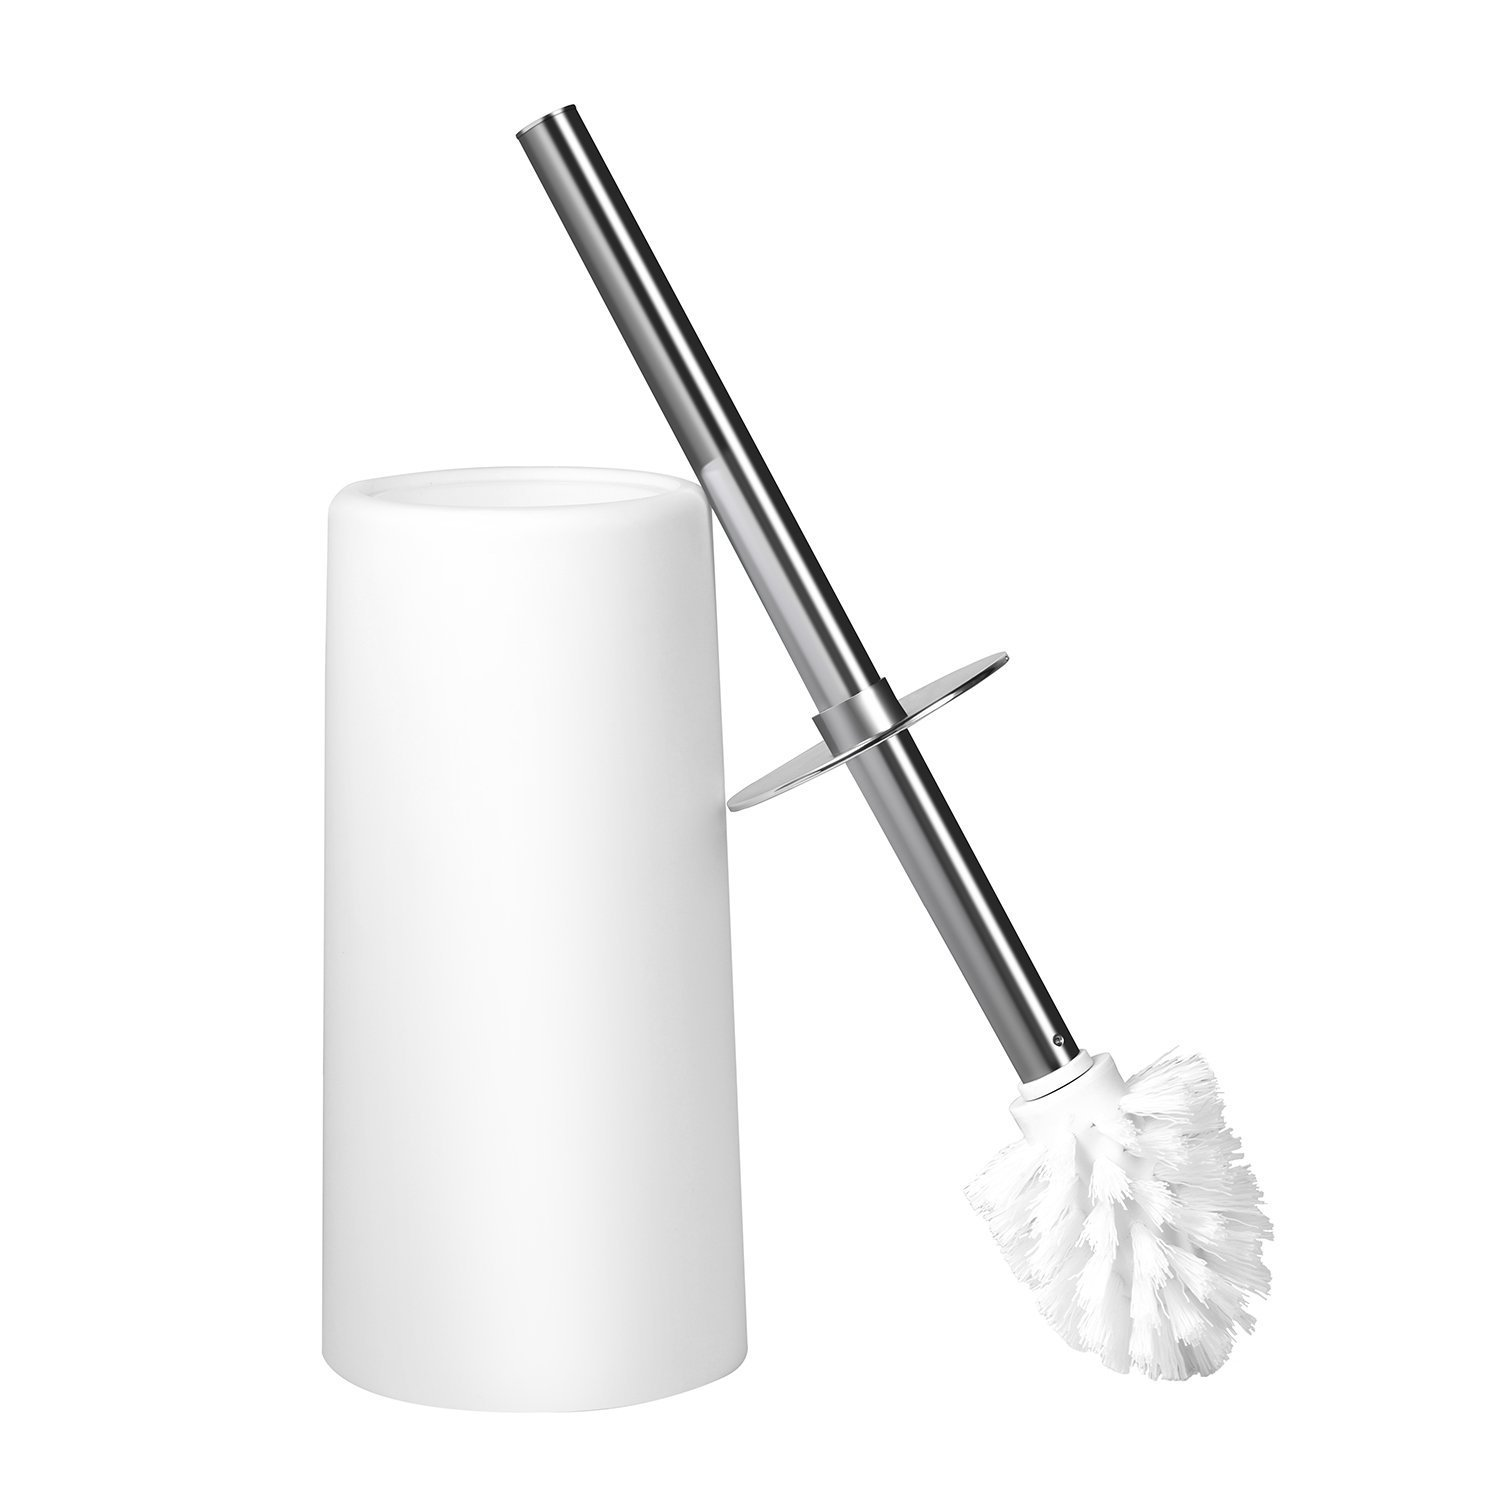 MoonLa Toilet Brush and Holder for Bathroom Toilet, Stainless Steel Handle Longer Toilet Bowl Brush, Sturdy and Deep Cleaning (White)